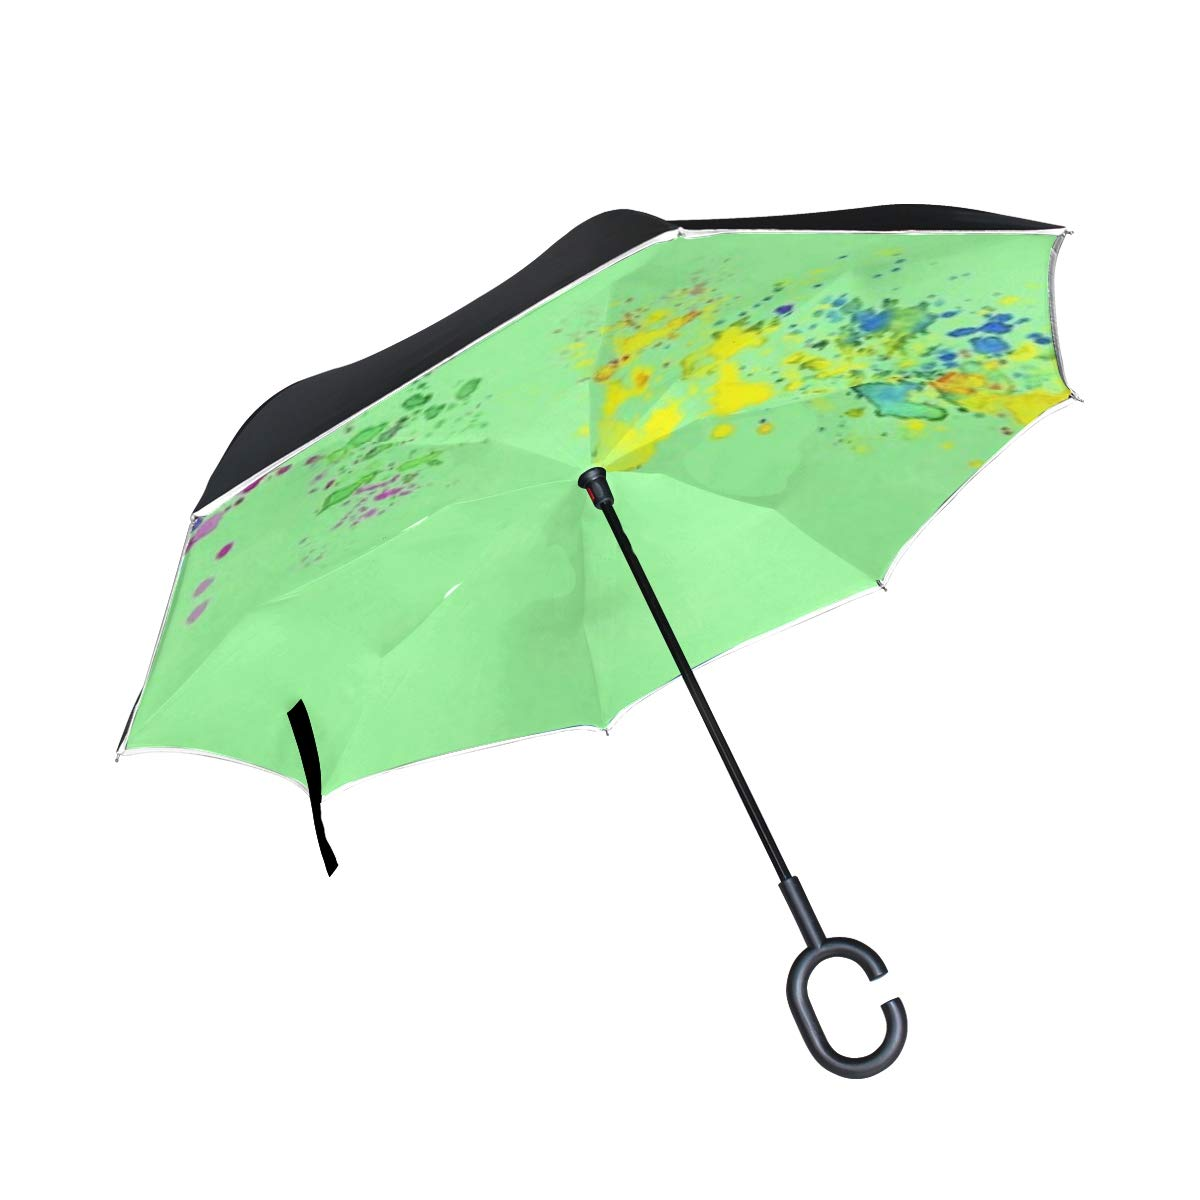 Jnseff Double Layer Inverted Banner Template Green Colorful School Fun Umbrellas Reverse Folding Umbrella Windproof Uv Protection Big Straight Umbrella for Car Rain Outdoor with C-Shaped Handle by Jnseff (Image #1)